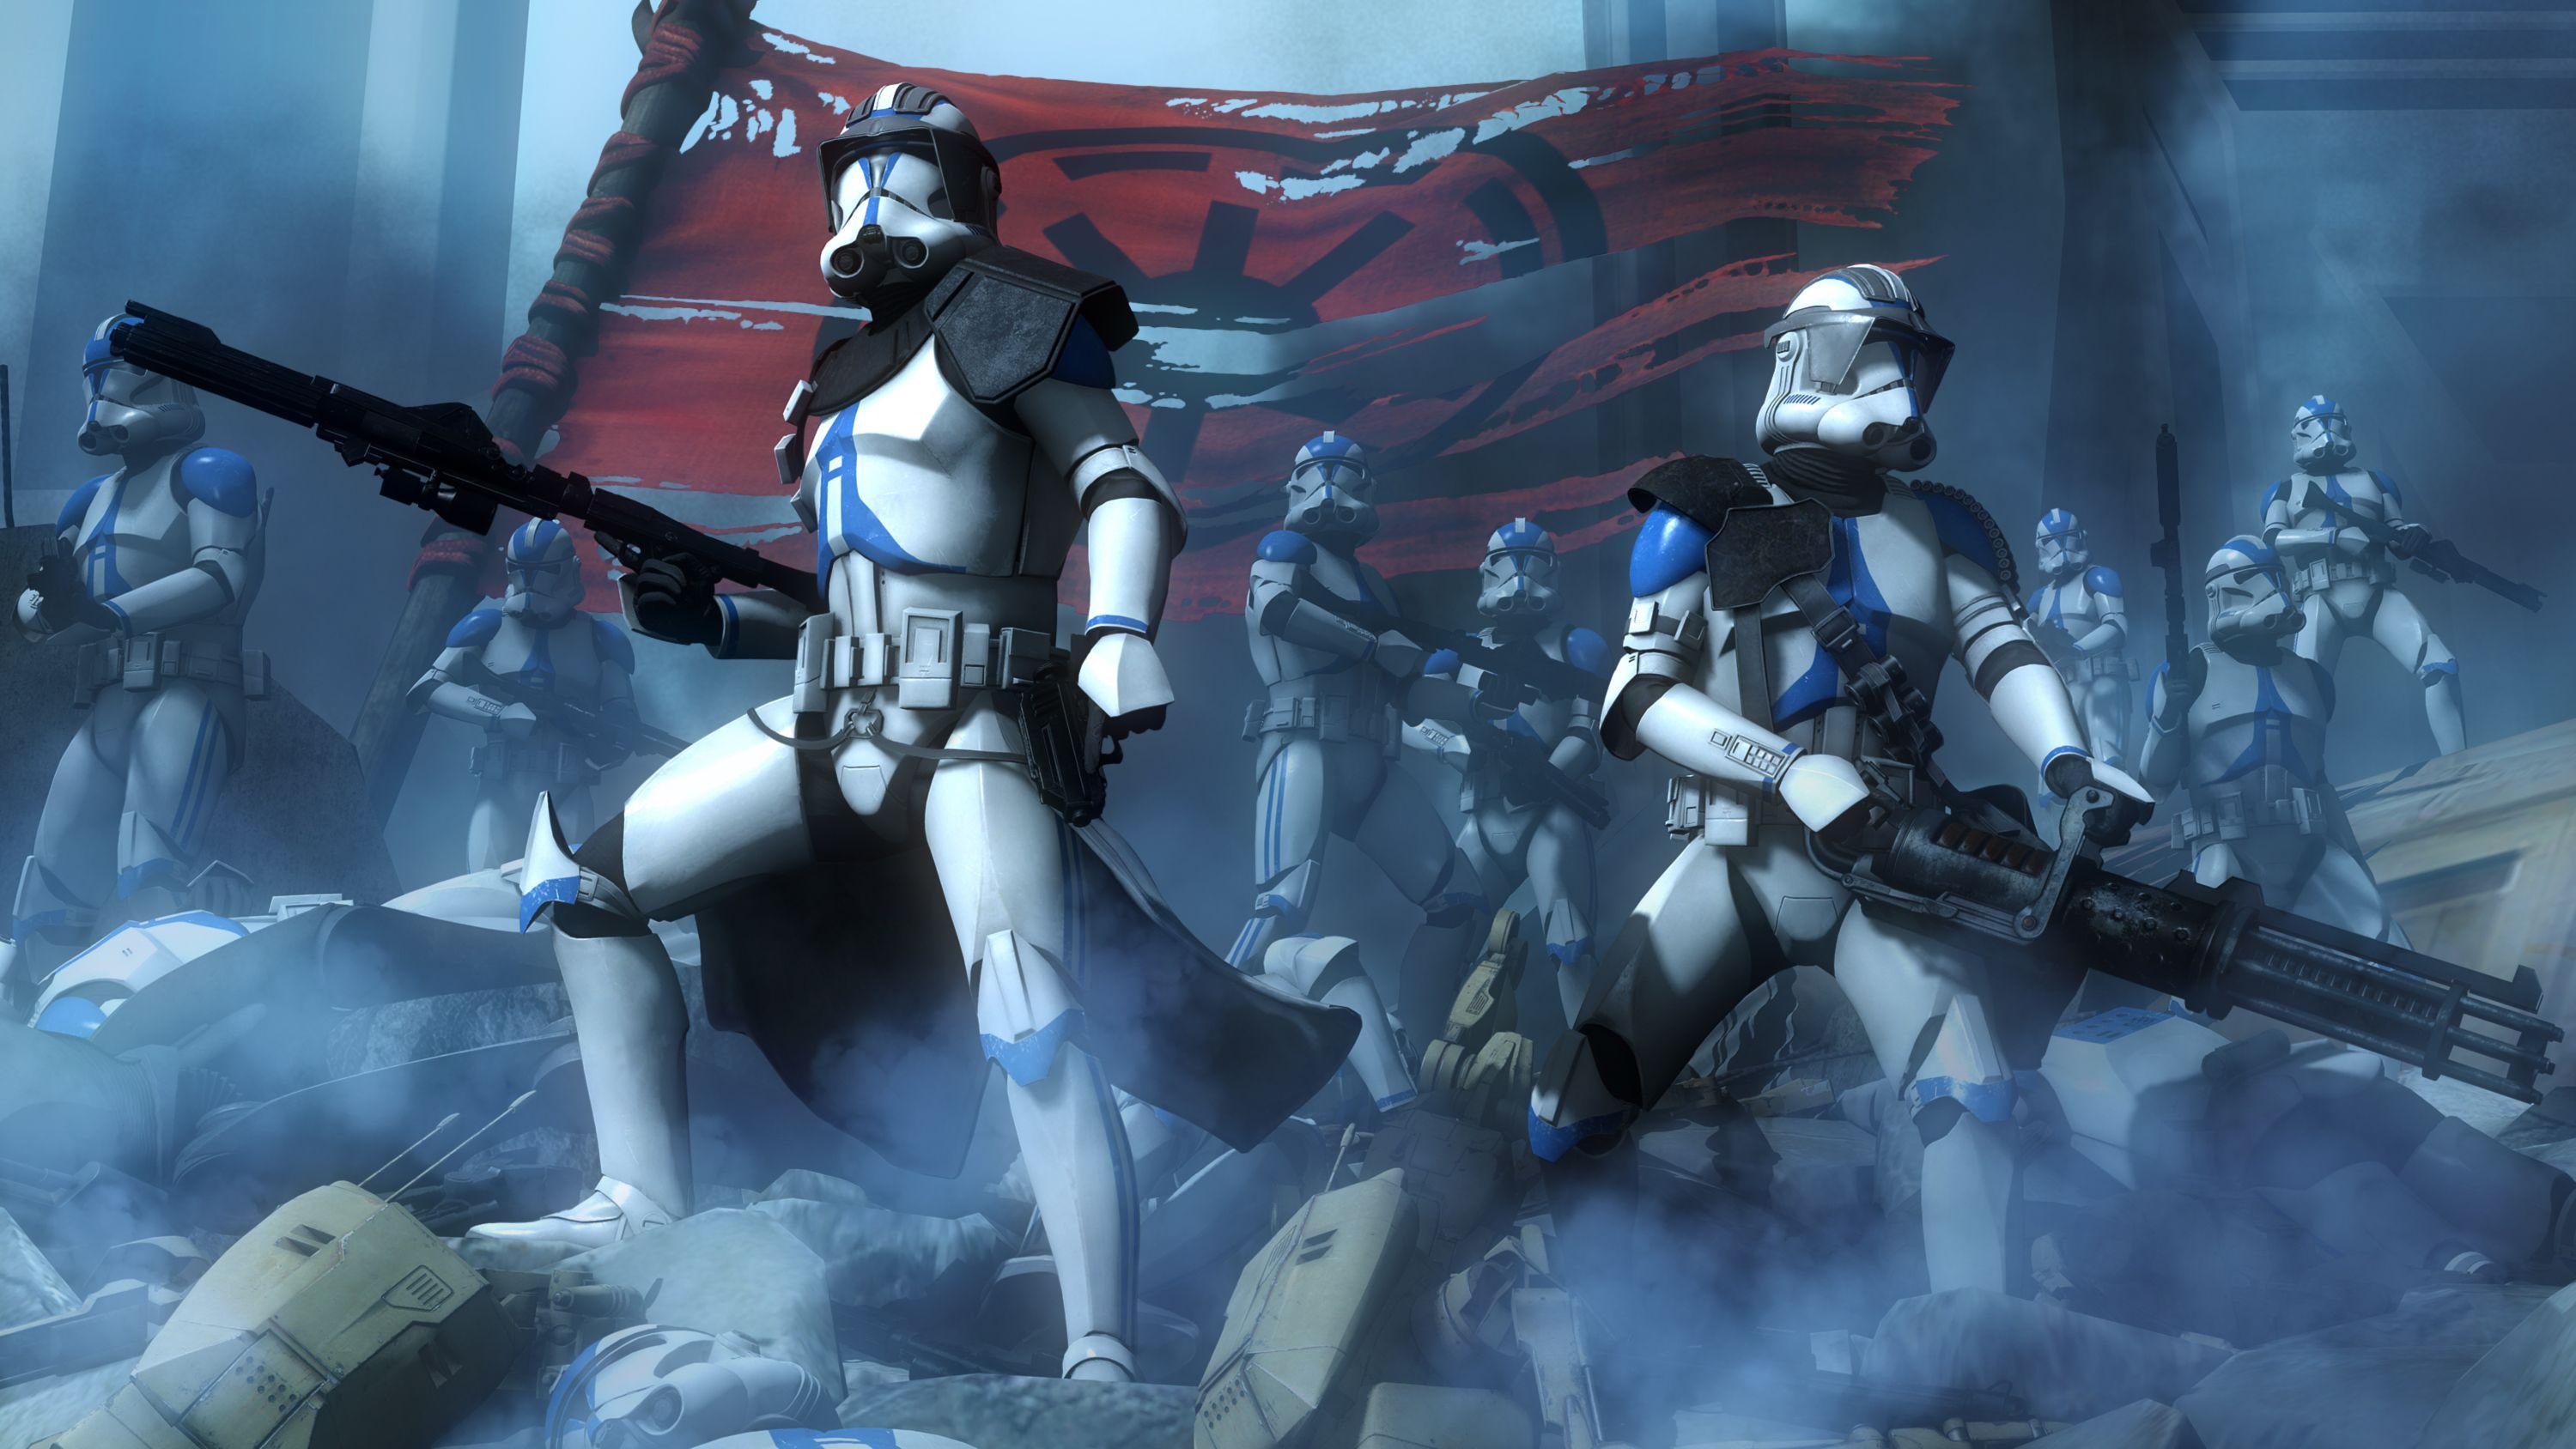 10 New Star Wars Clone Army Wallpaper Full Hd 1080p For Pc